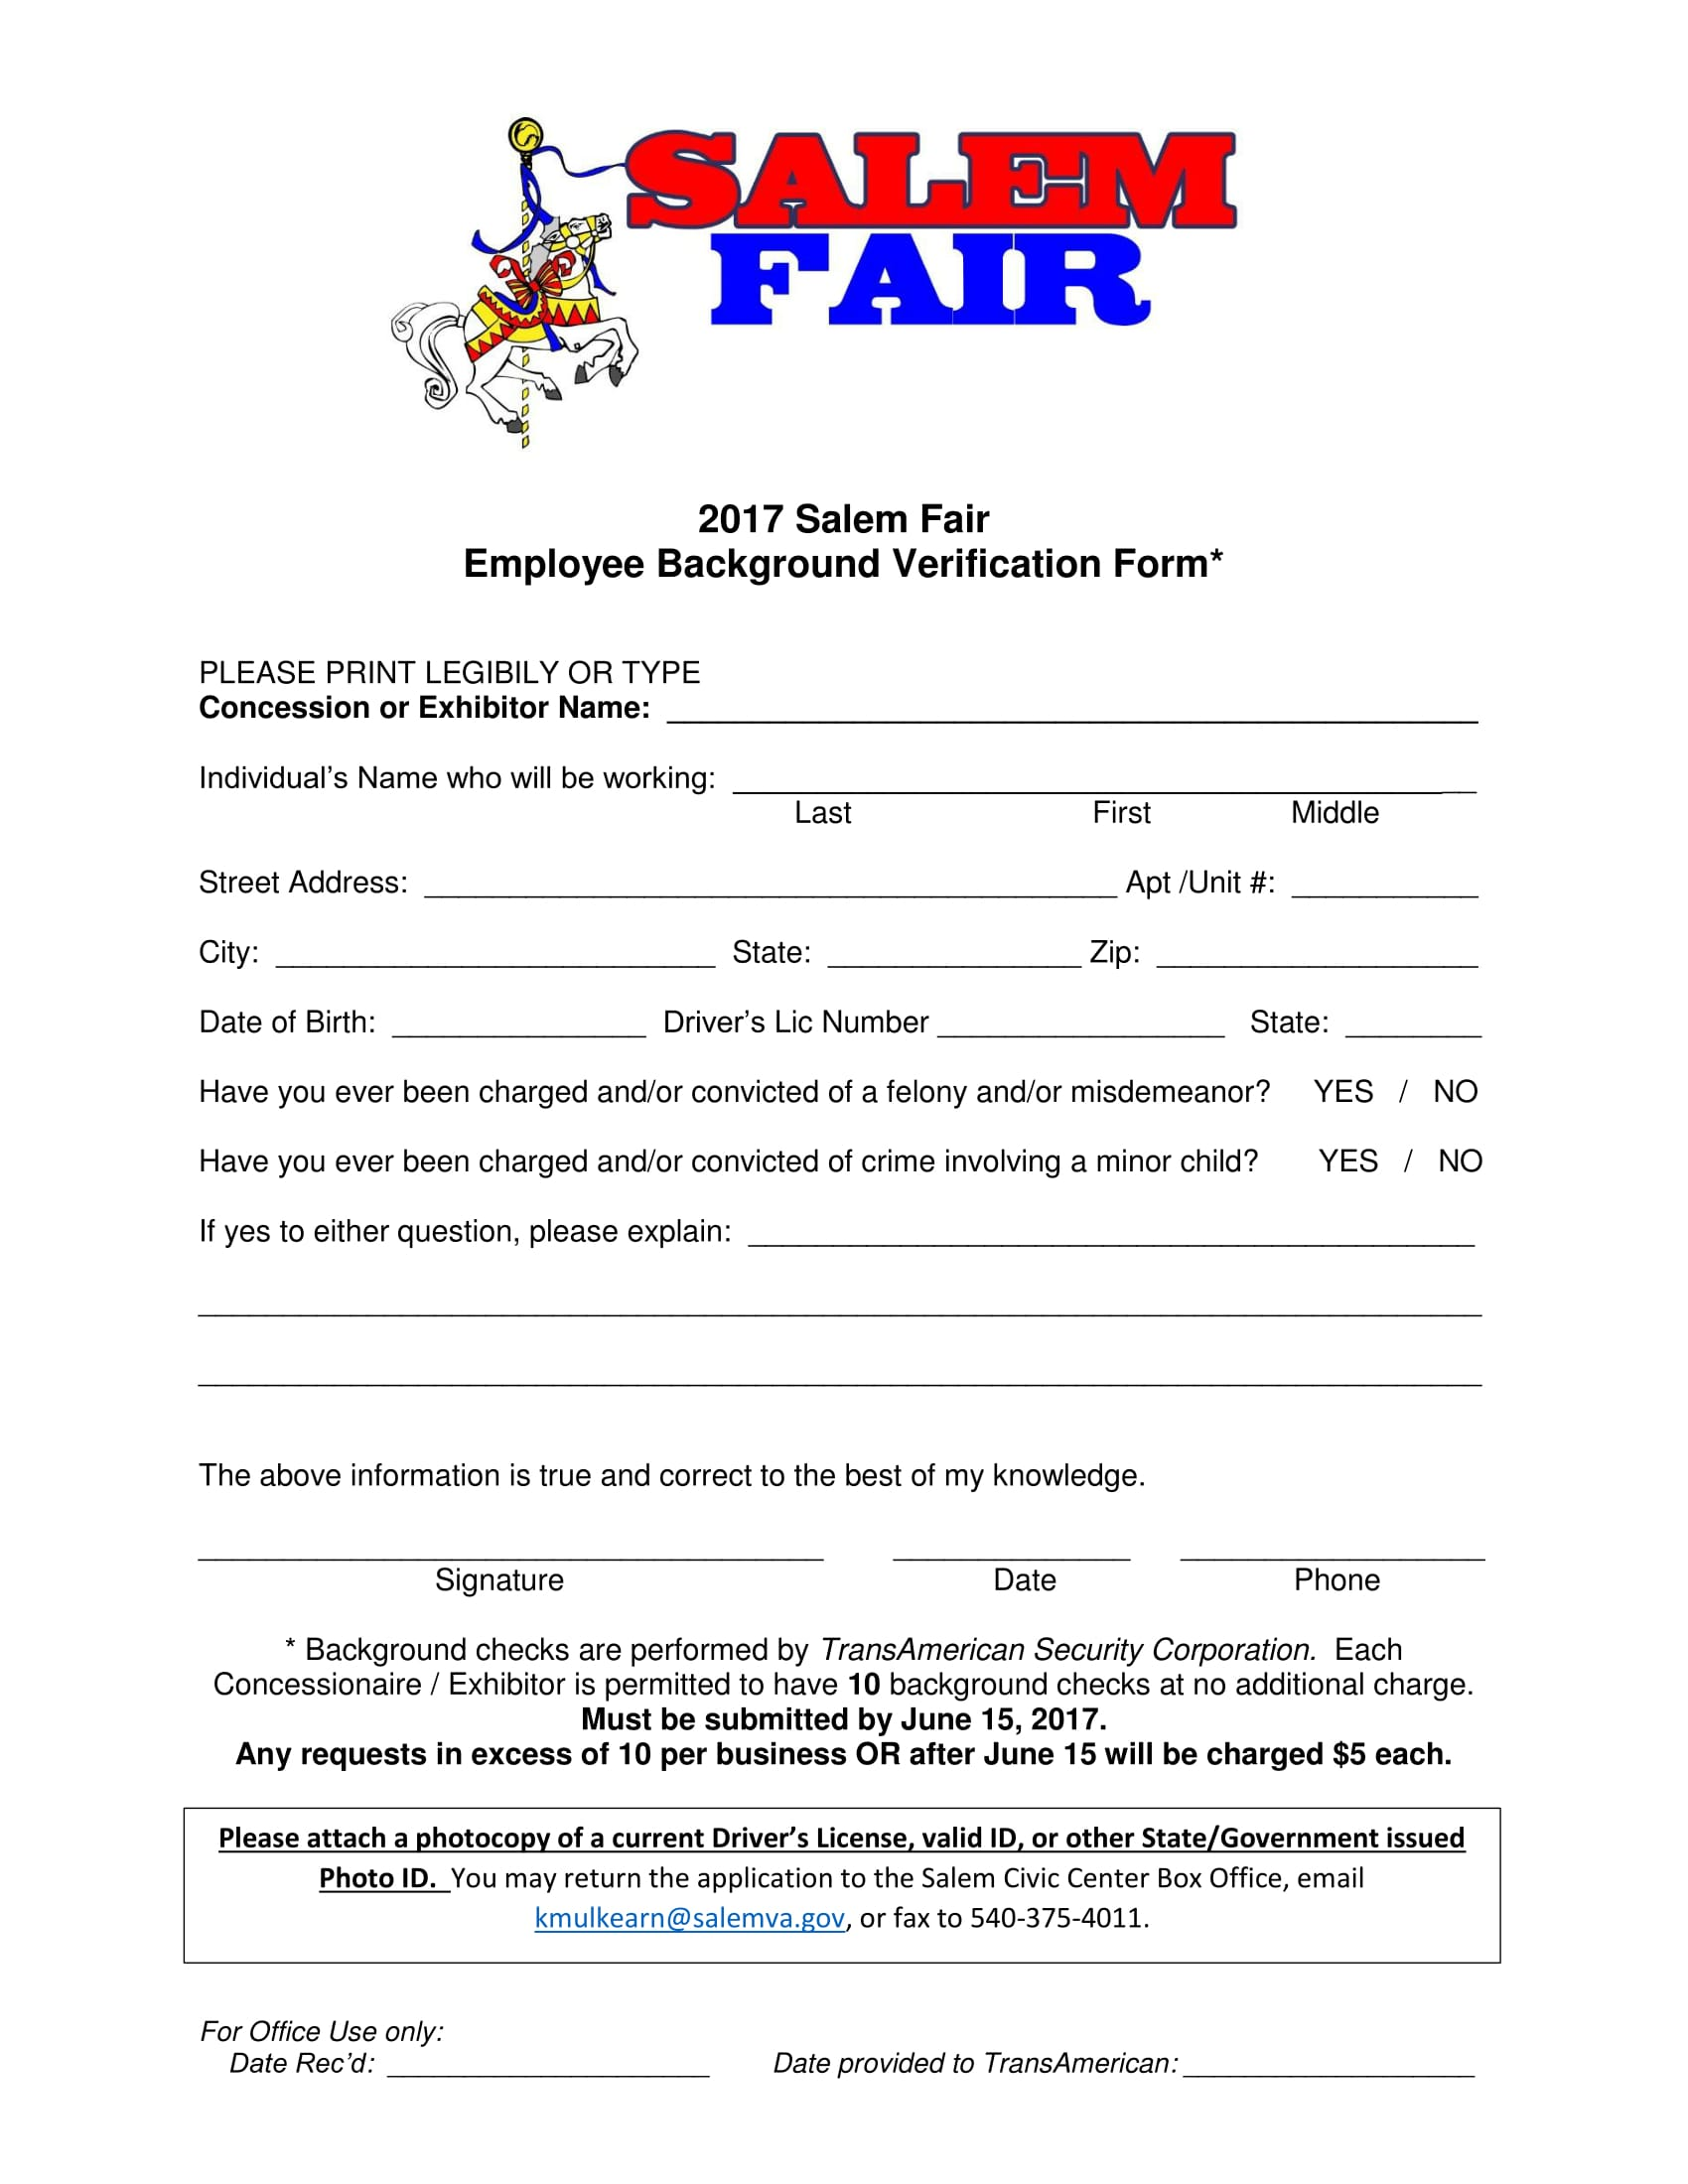 employee background verification form 1